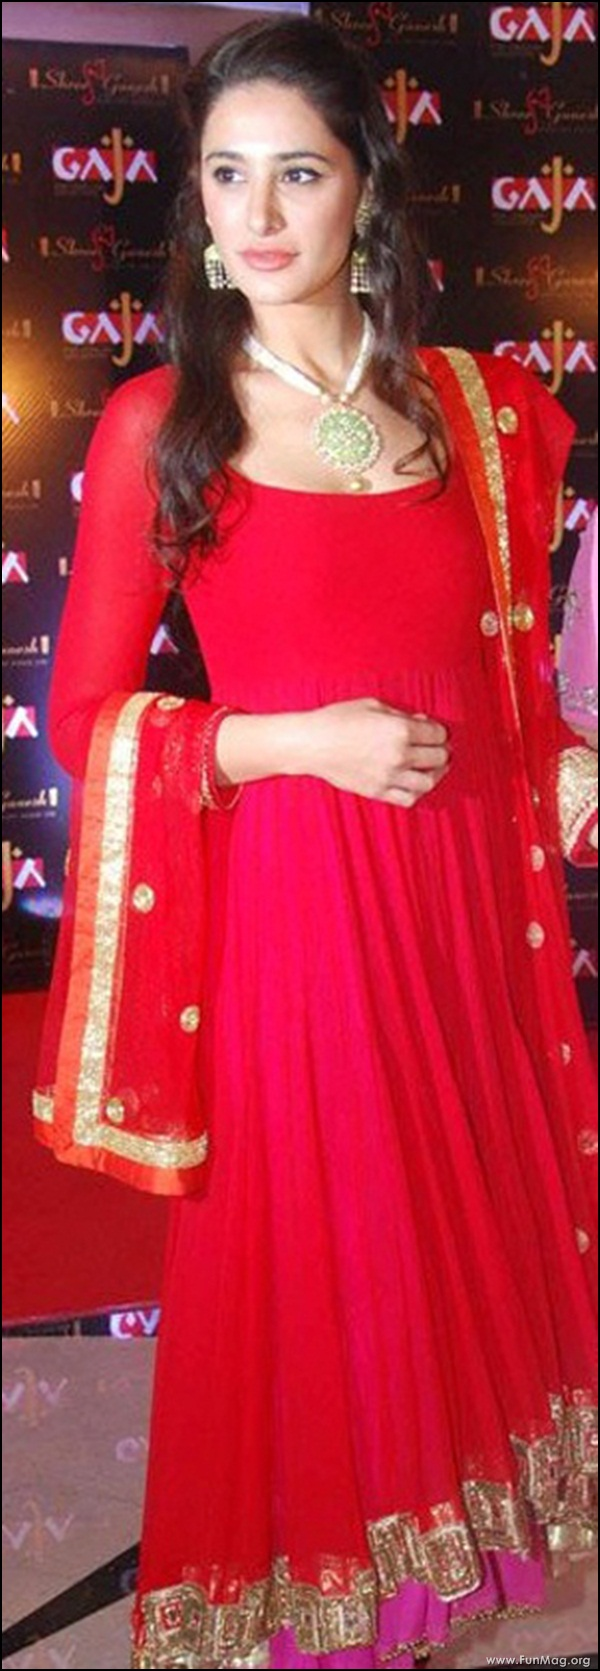 nargis-fakhri-in-red-indian-dress- (20)